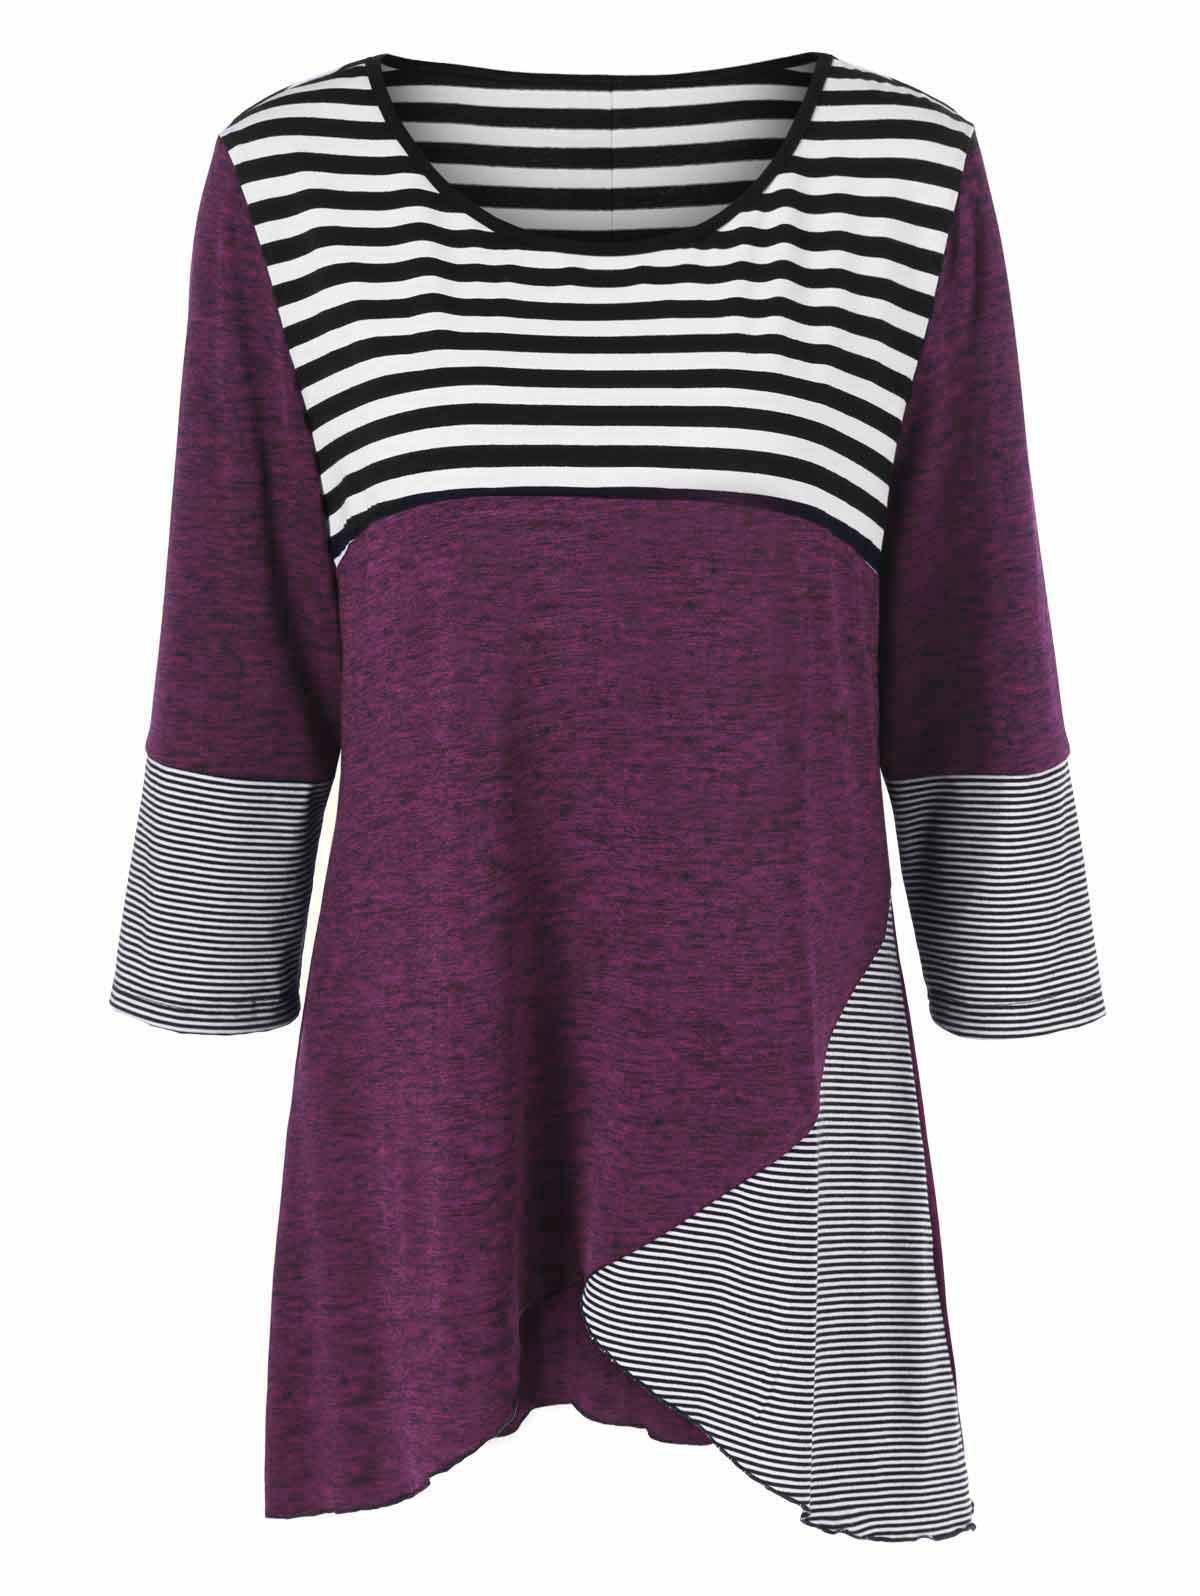 Plus Size Striped Tunic T-ShirtWOMEN<br><br>Size: 2XL; Color: PURPLISH RED; Material: Polyester,Spandex; Shirt Length: Long; Sleeve Length: Three Quarter; Collar: Scoop Neck; Style: Casual; Season: Fall,Spring; Pattern Type: Striped; Weight: 0.3800kg; Package Contents: 1 x T-Shirt;